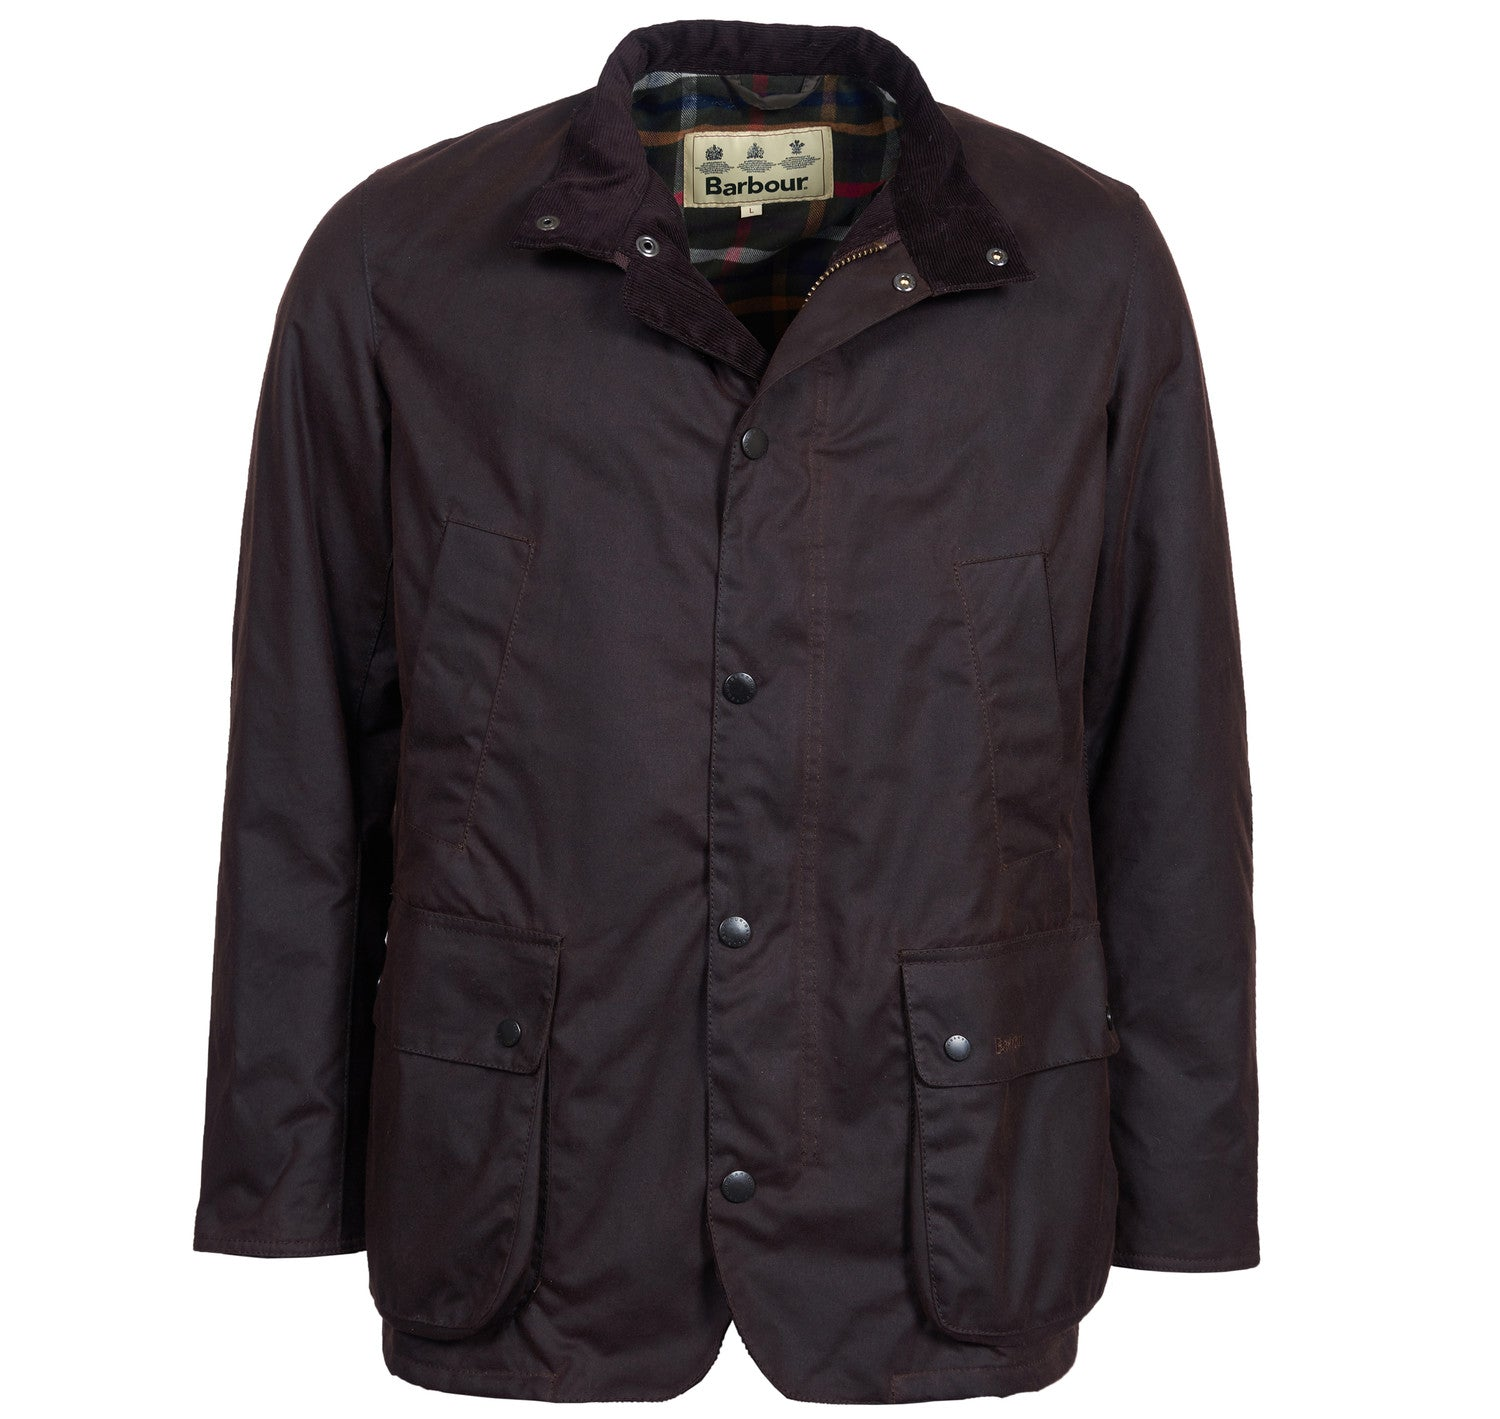 Barbour Brandreth Wax Jacket for Men in Rustic